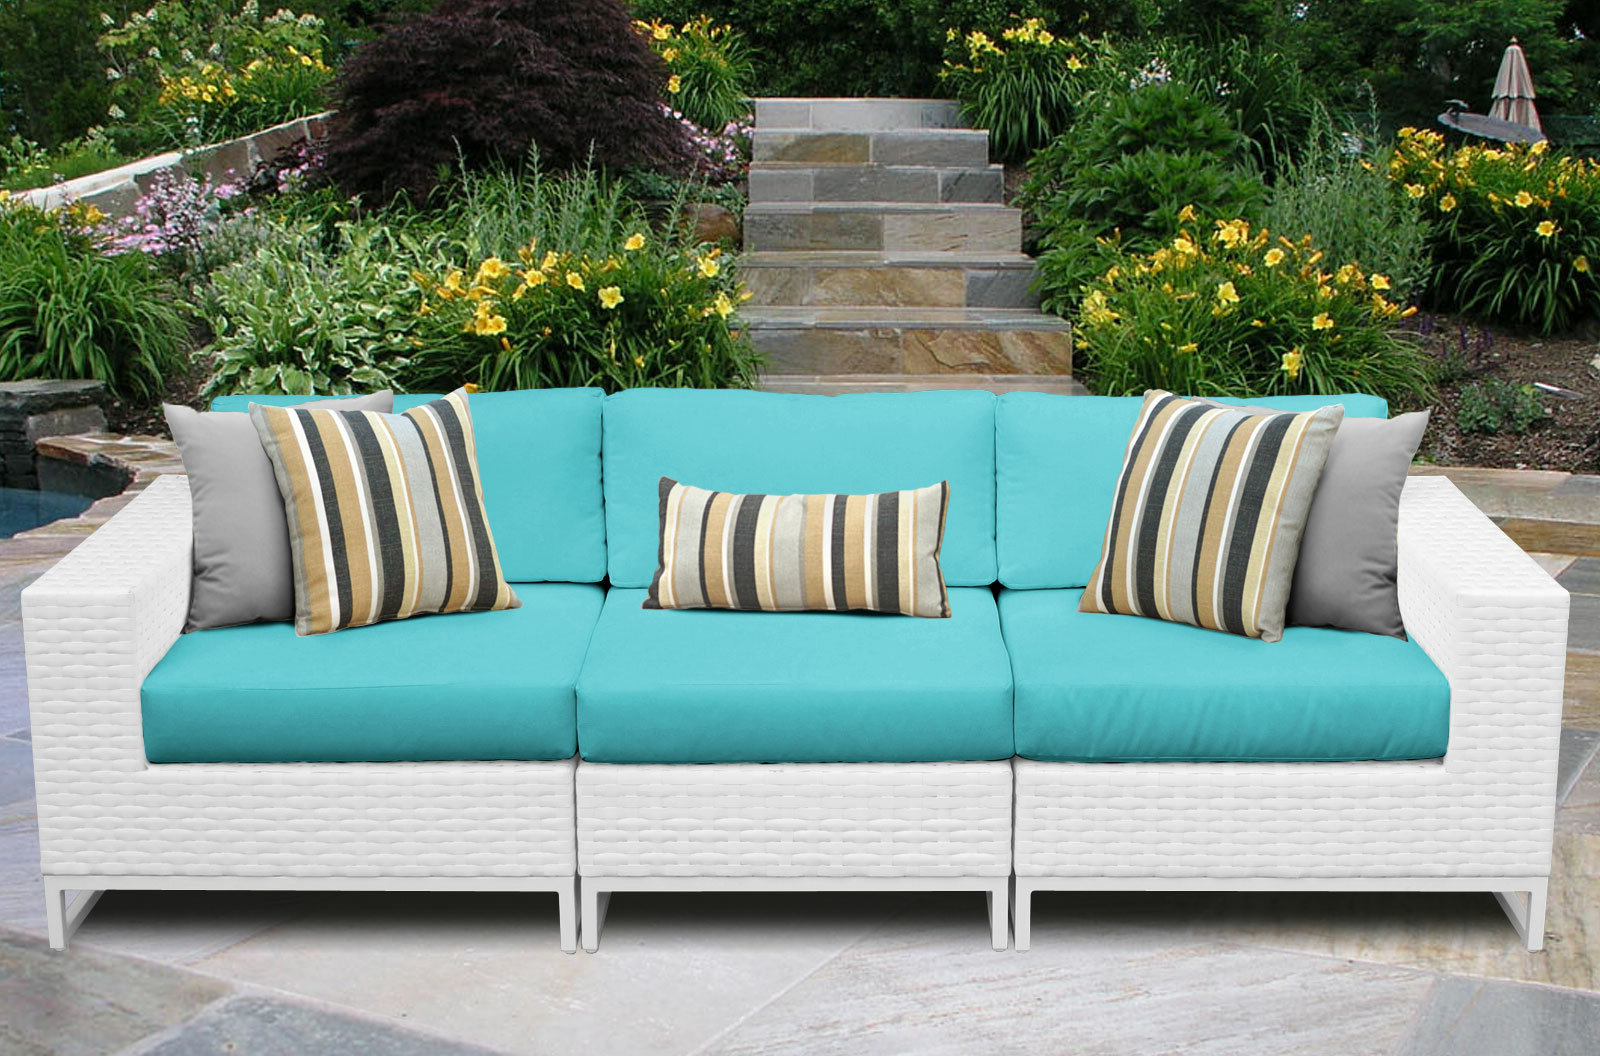 Most Current Menifee Patio Sofa With Cushions Pertaining To Menifee Loveseats With Cushions (View 2 of 25)